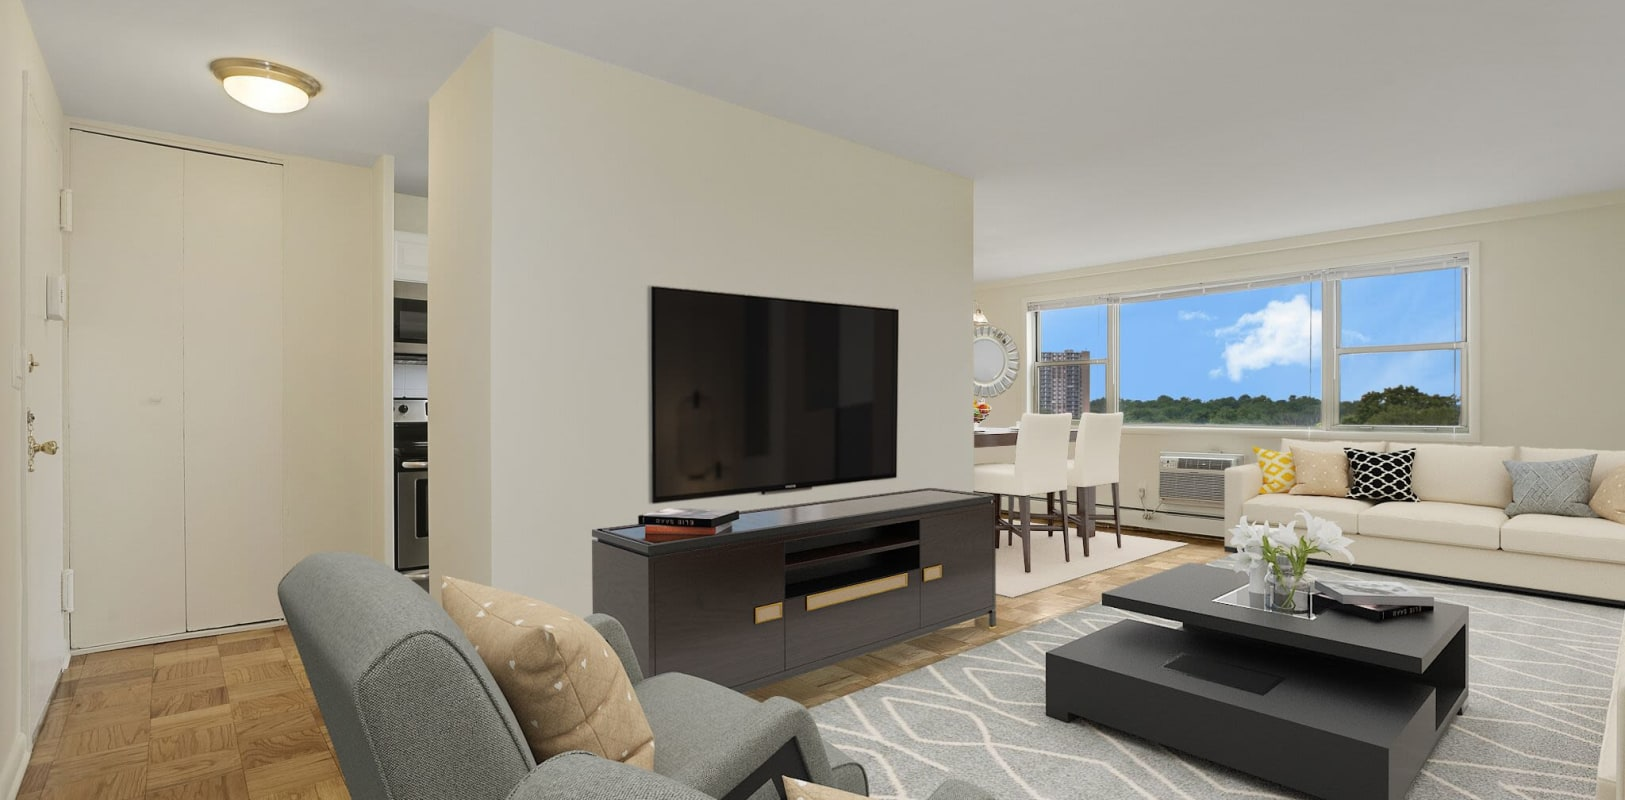 Living room with a view at 10 Landing Lane in New Brunswick, New Jersey